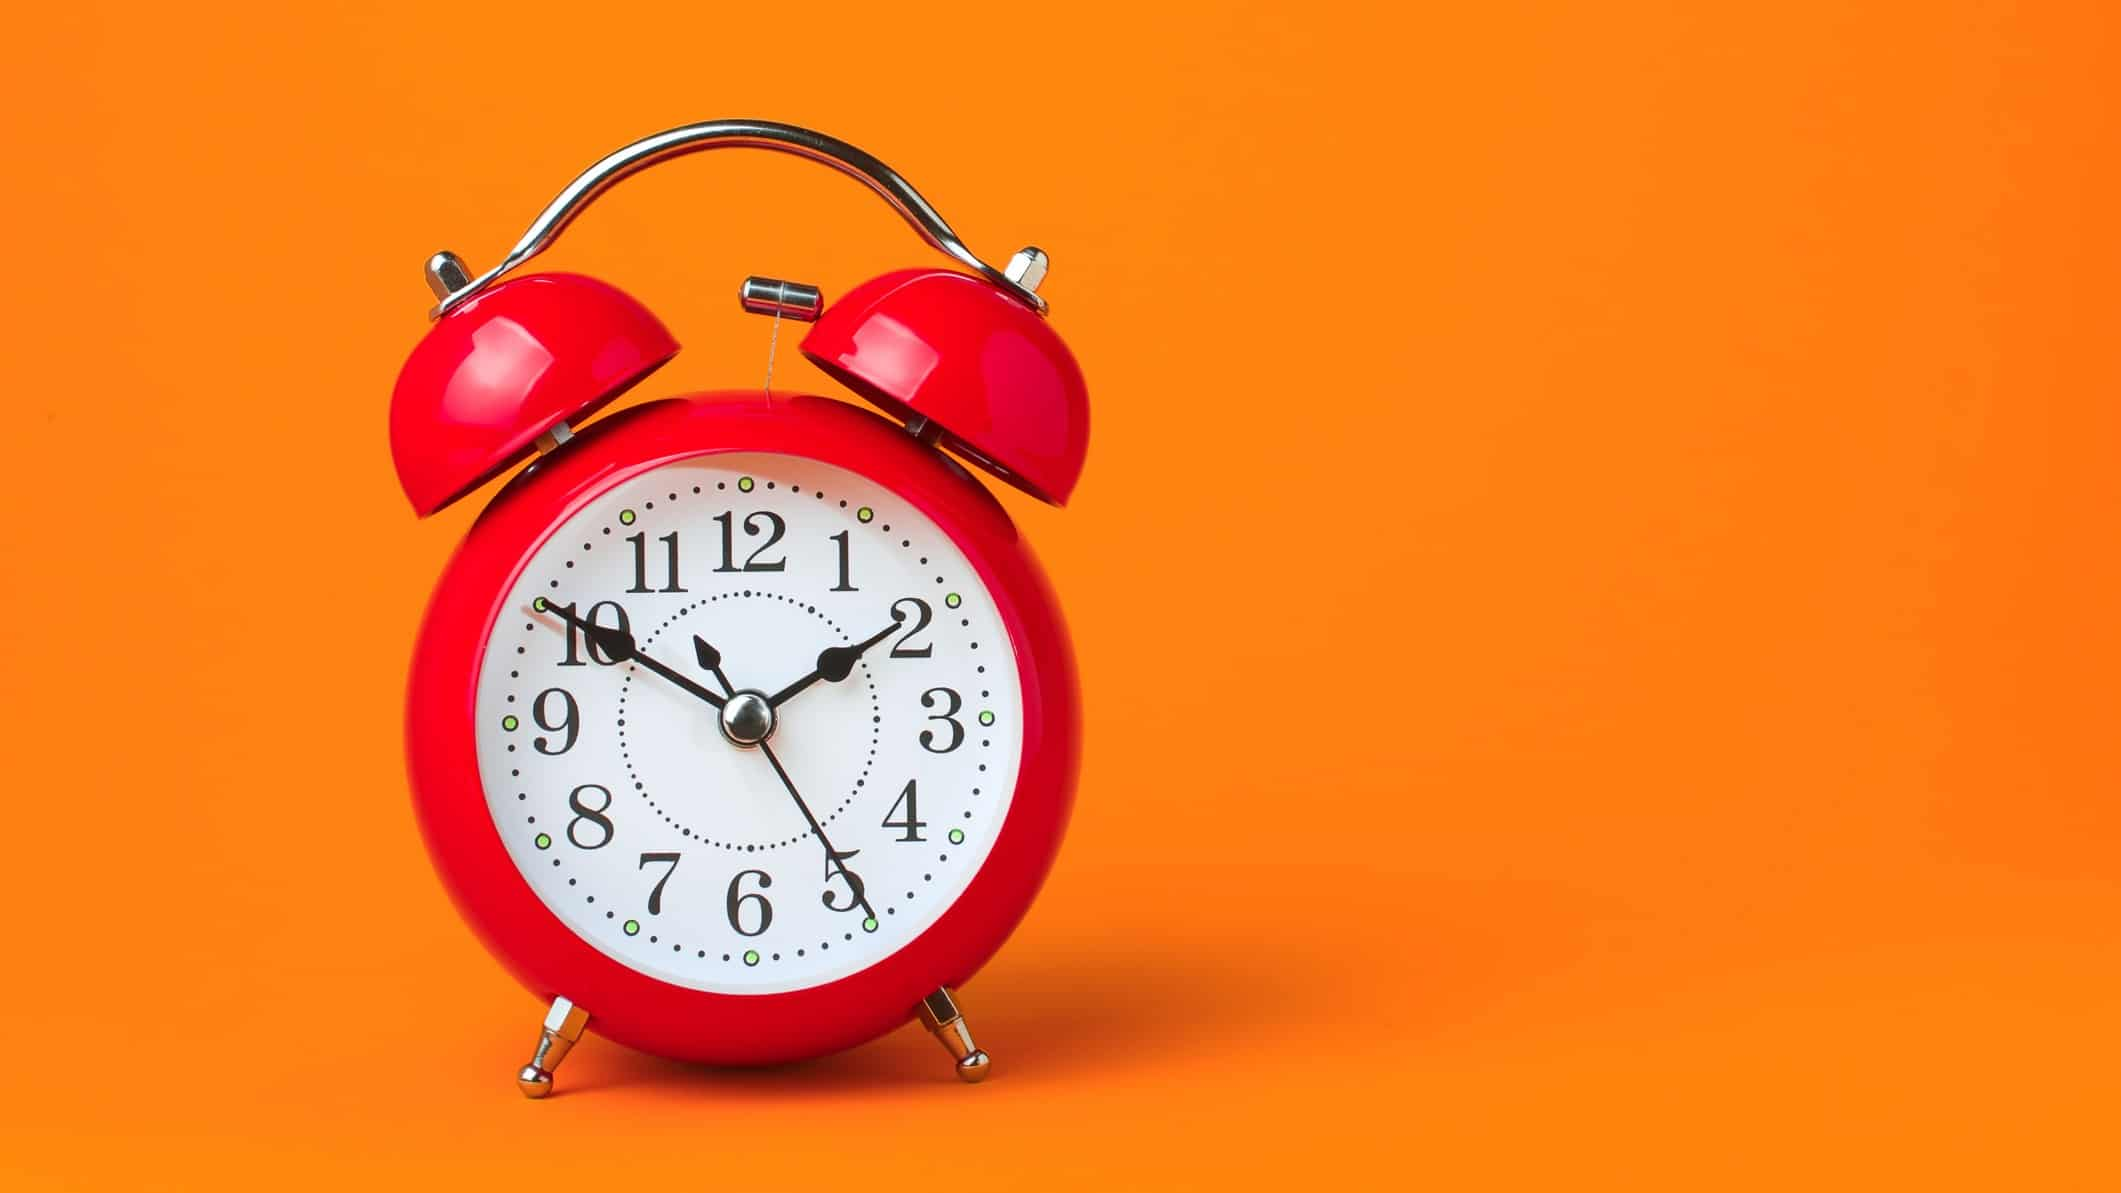 credit corp share price represented by red alarm clock against bright orange background